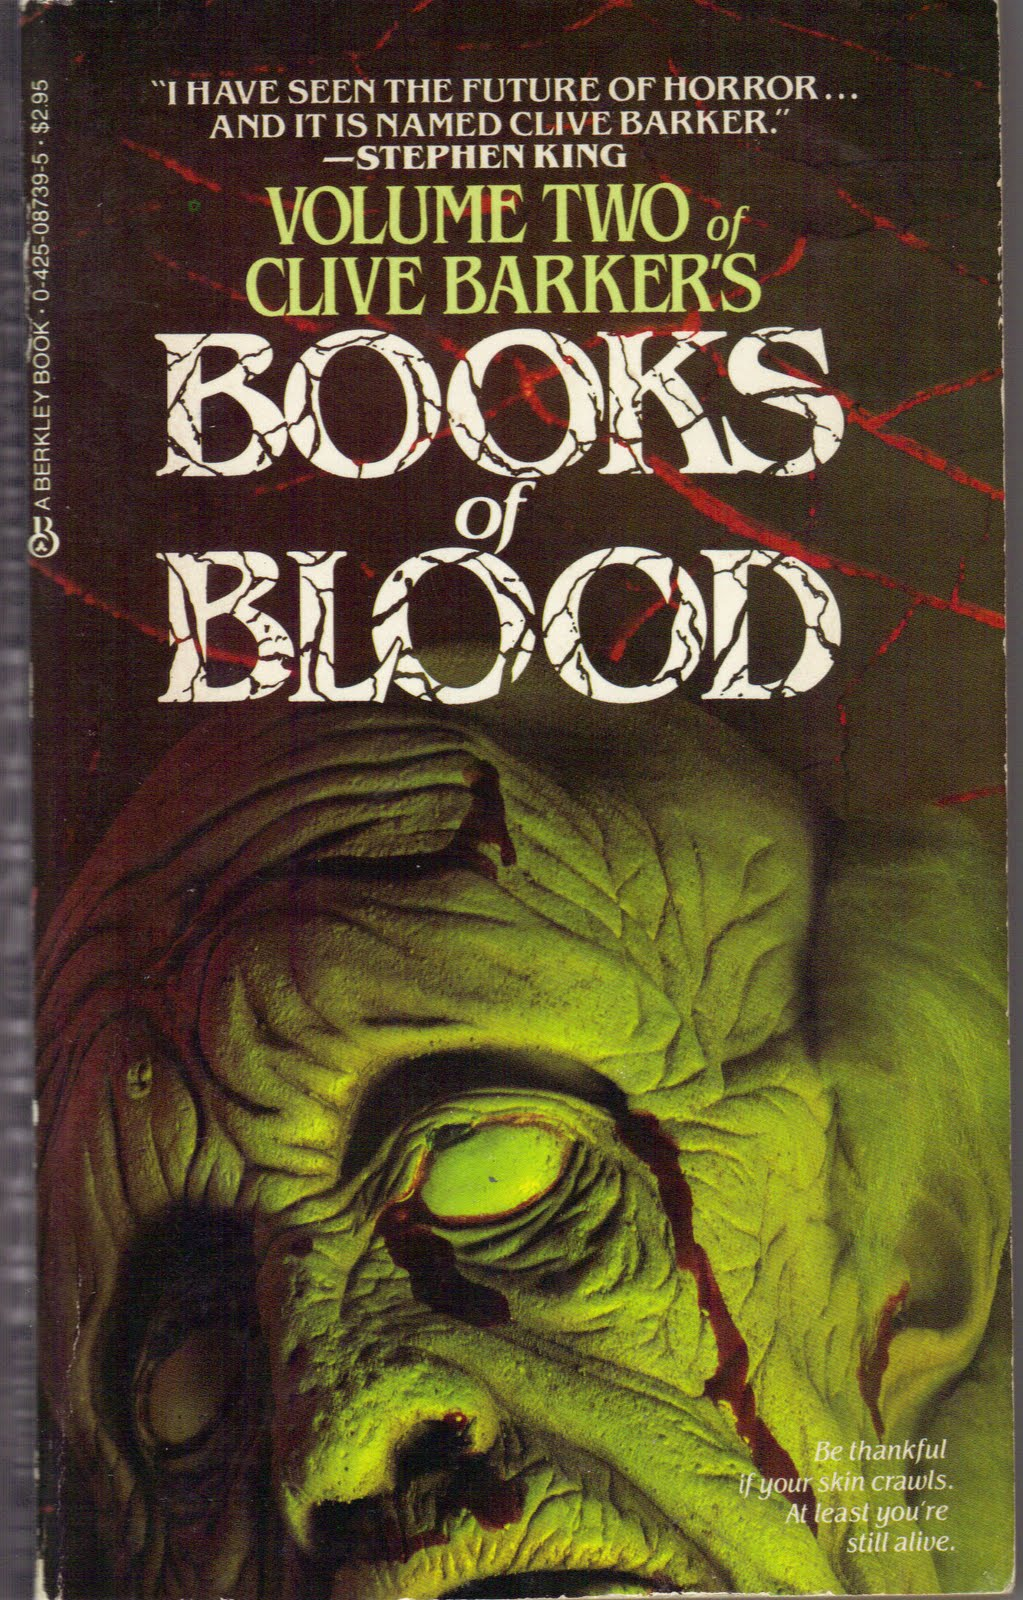 clive barker blood books volume horror dread vol covers fiction novel barkers 1984 revisiting written too much berkley ii which